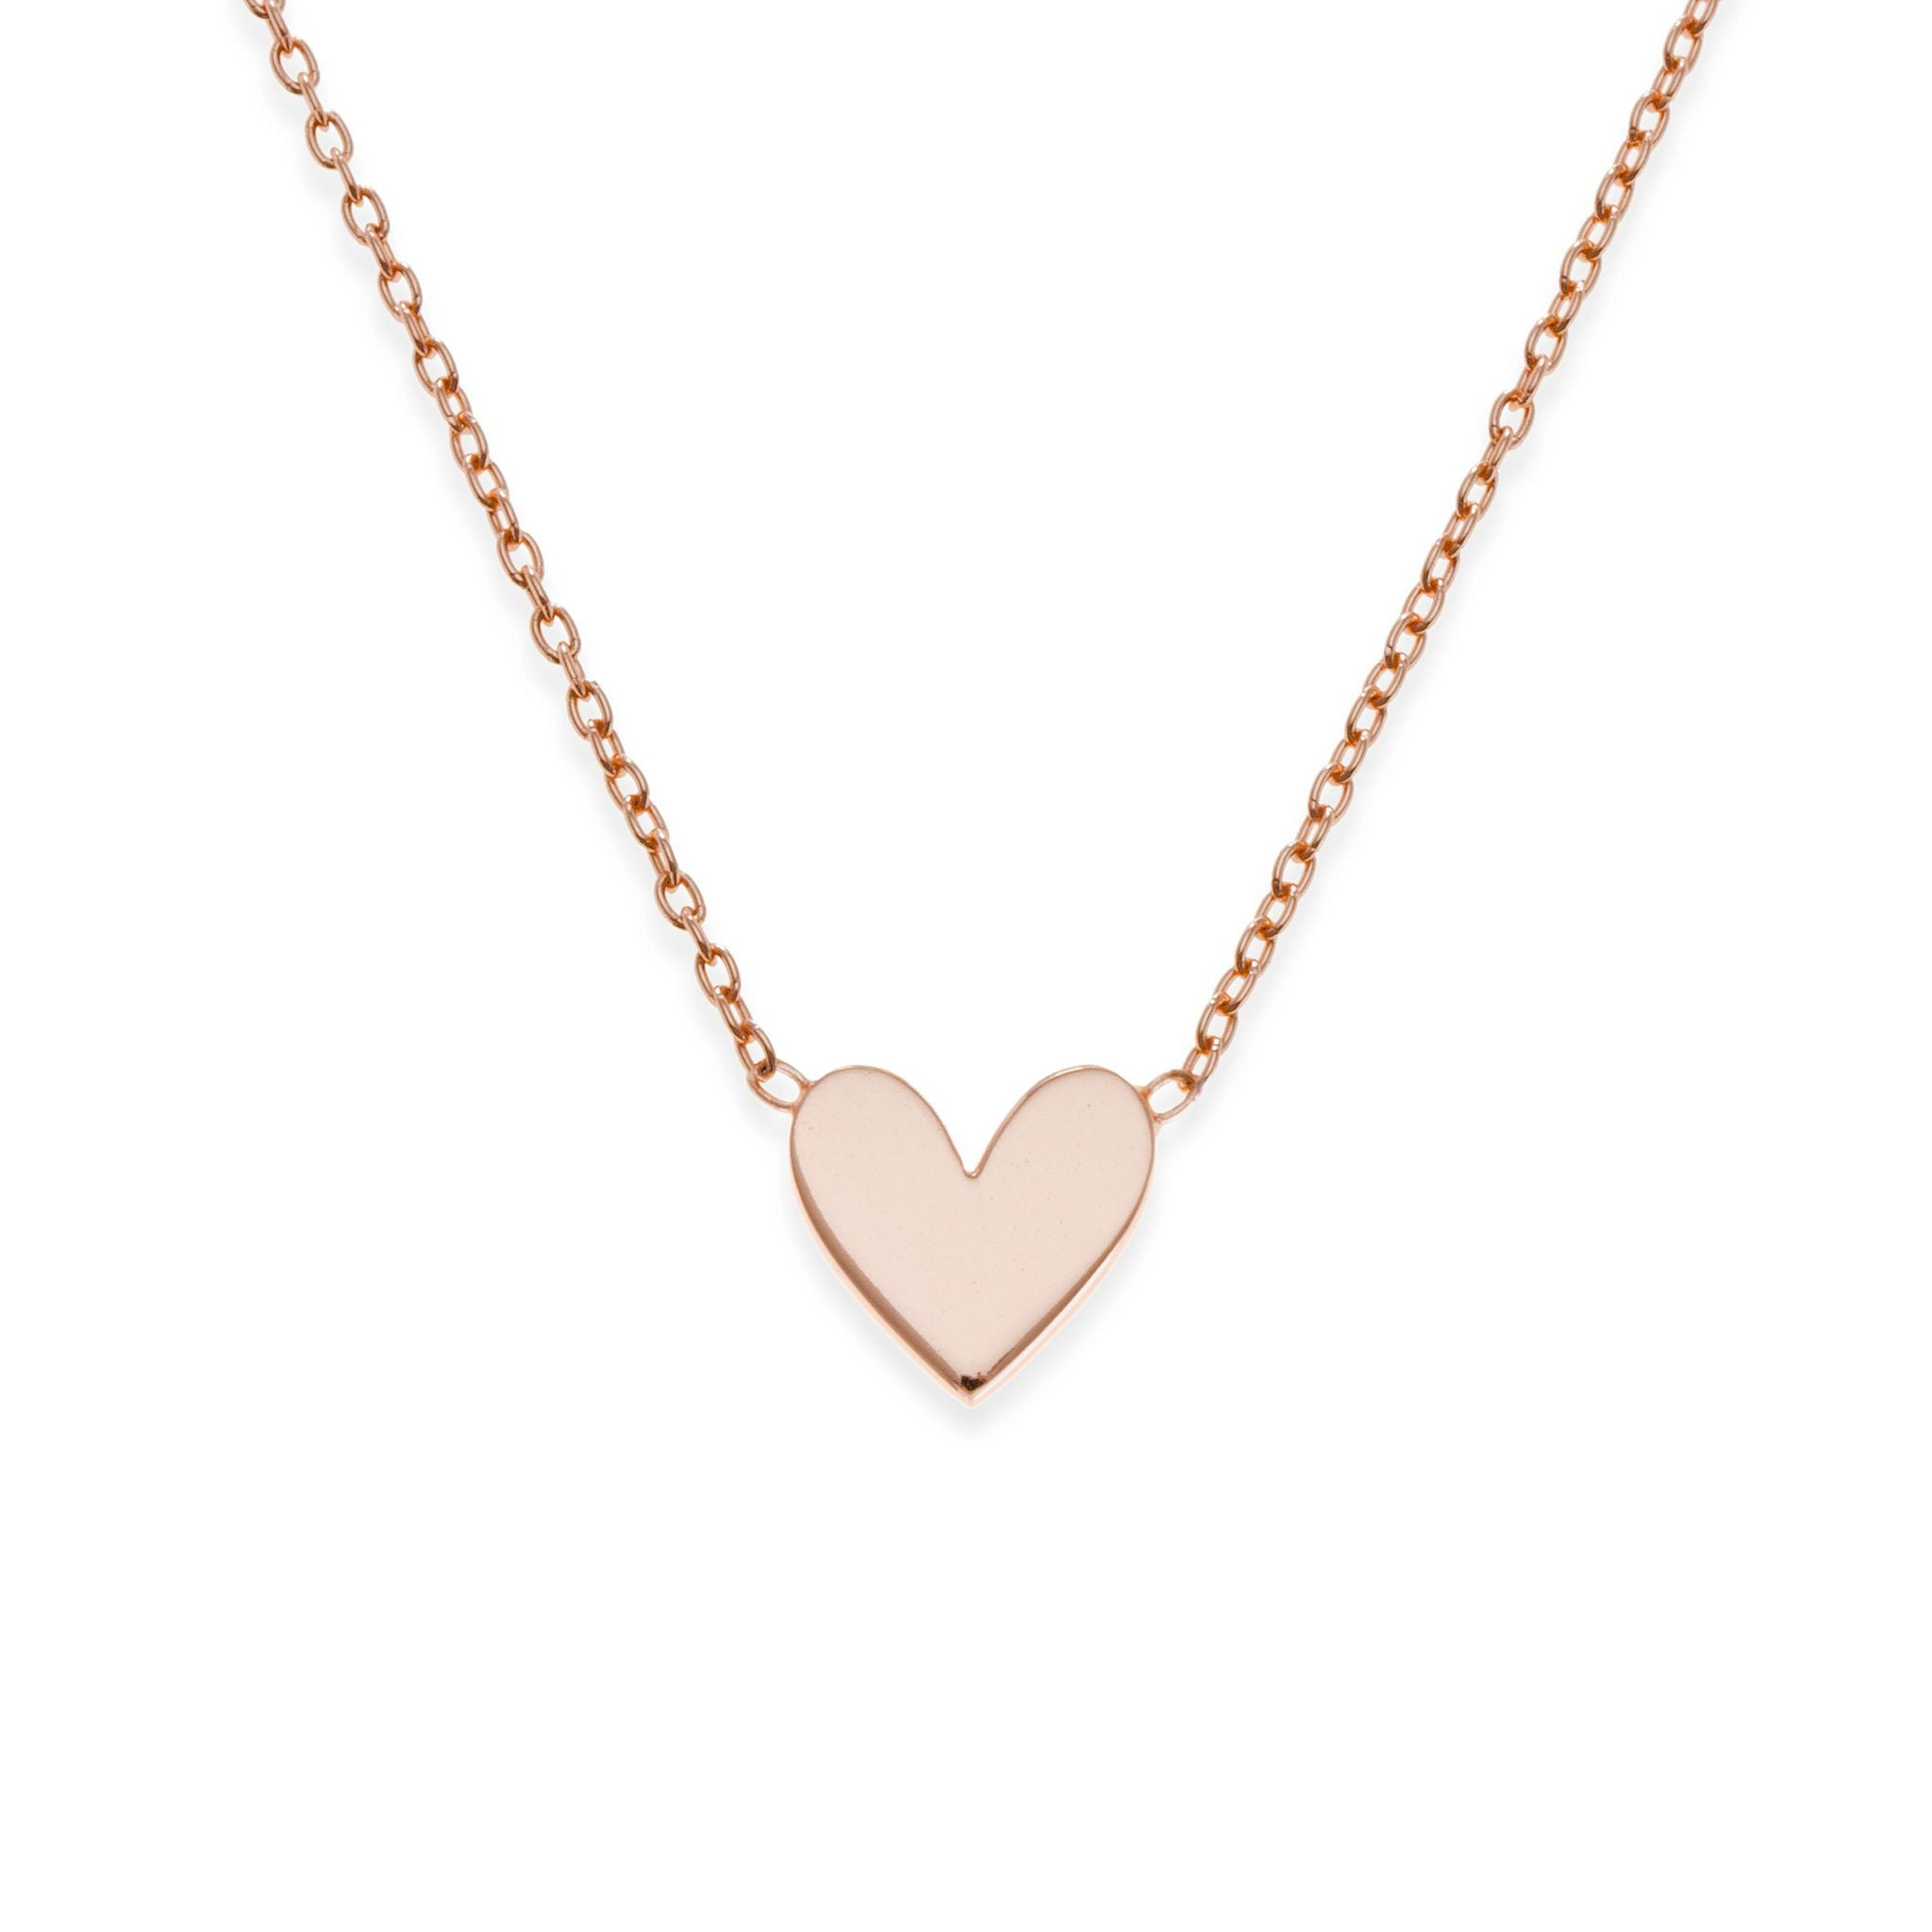 view reno alternate necklace heart os necklaces size jewellery product